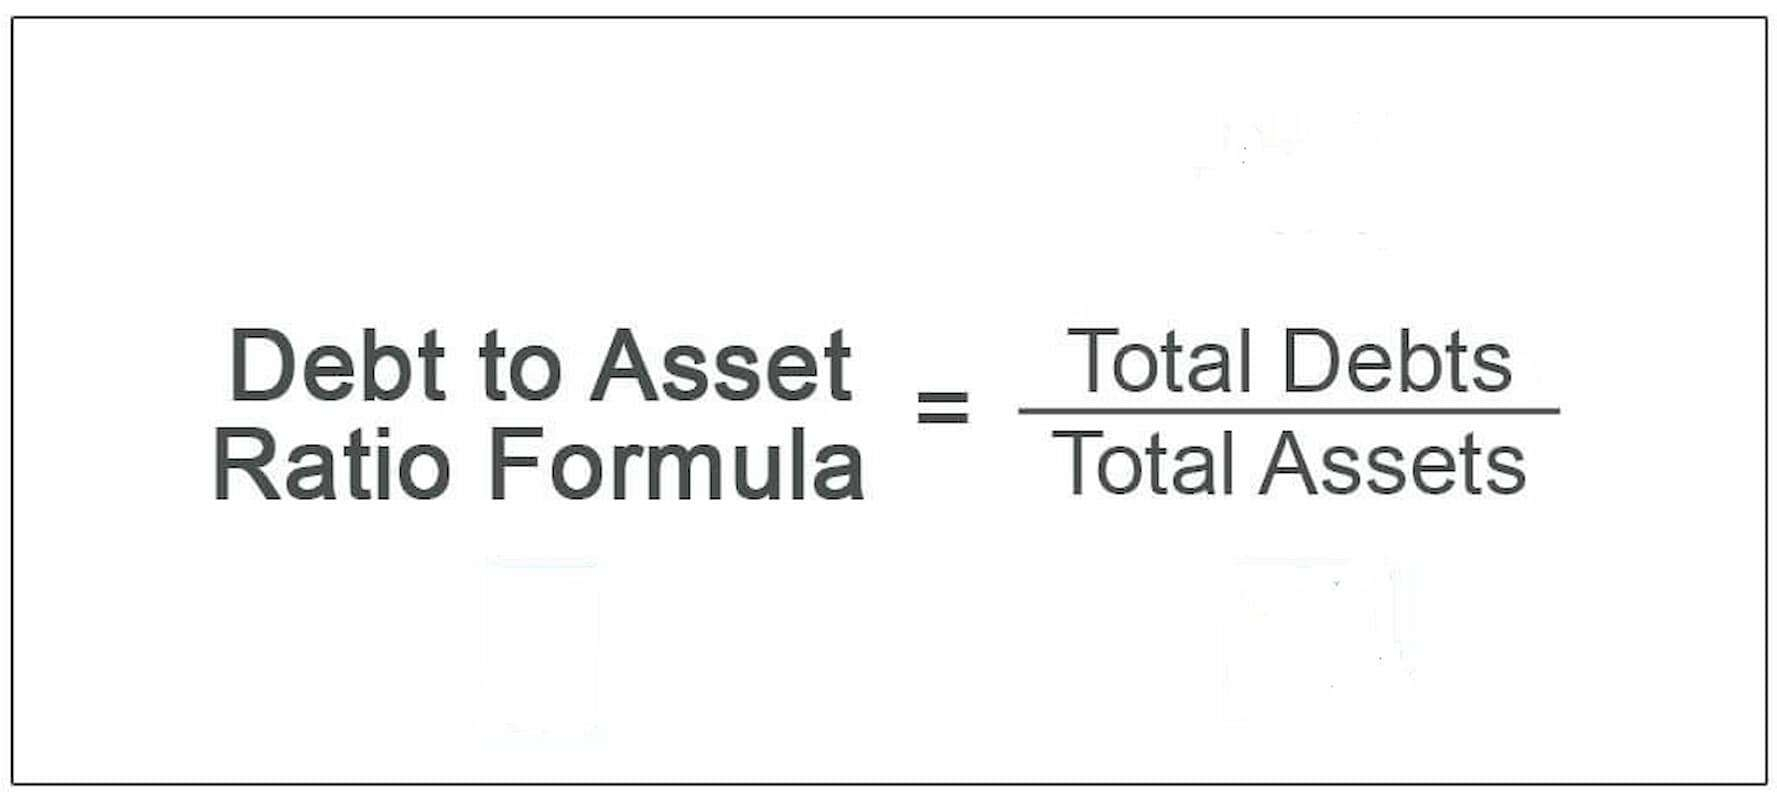 Debt to Asset Ratio: Explanation and Calculation